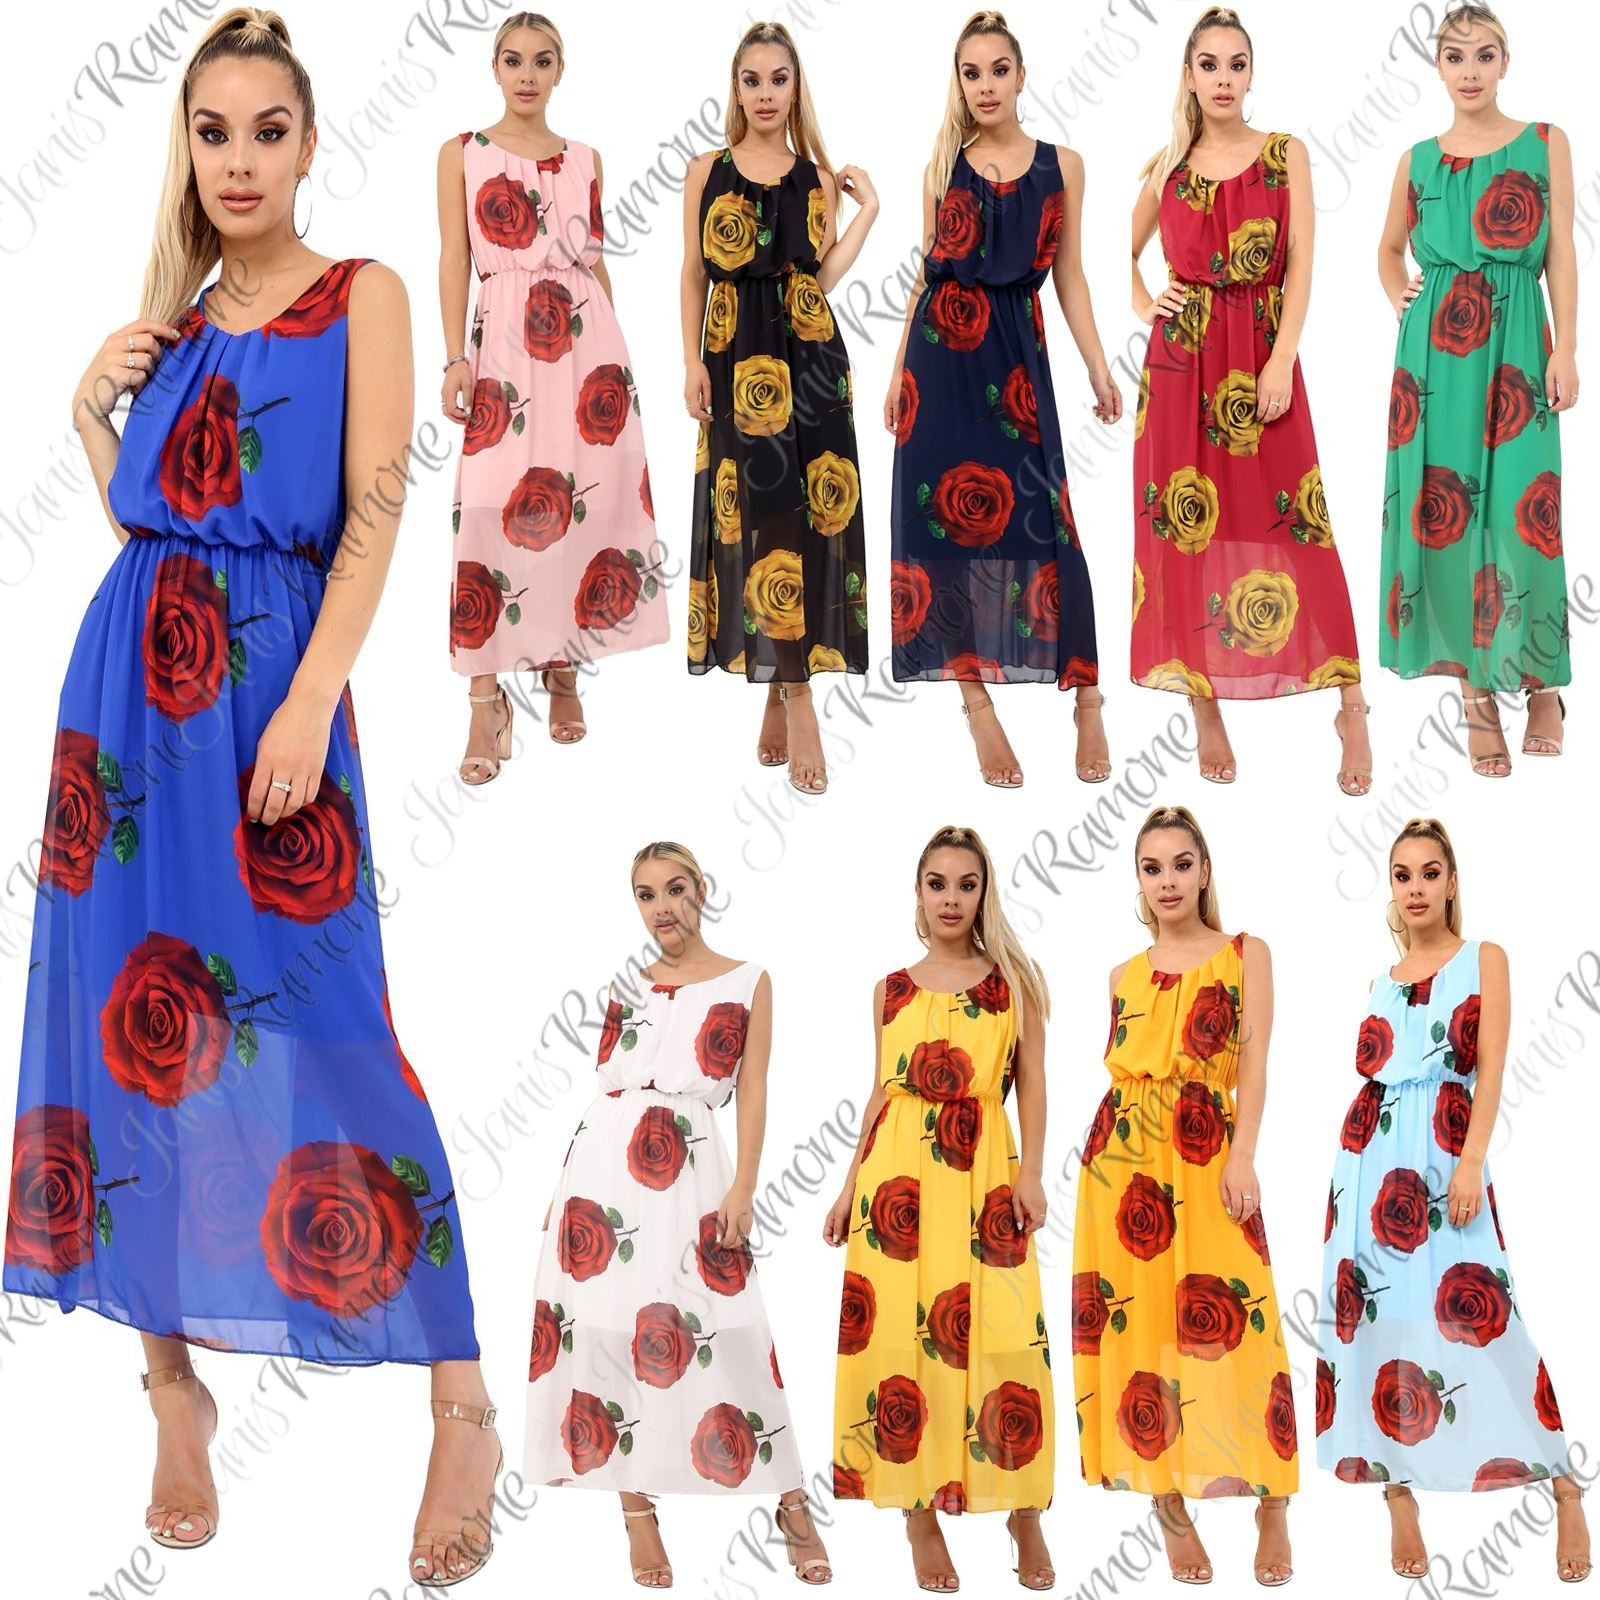 9c4ca4dcb844 Details about Womens Floral Print Chiffon With Linning Party Summer Balloons  Long Maxi Dress